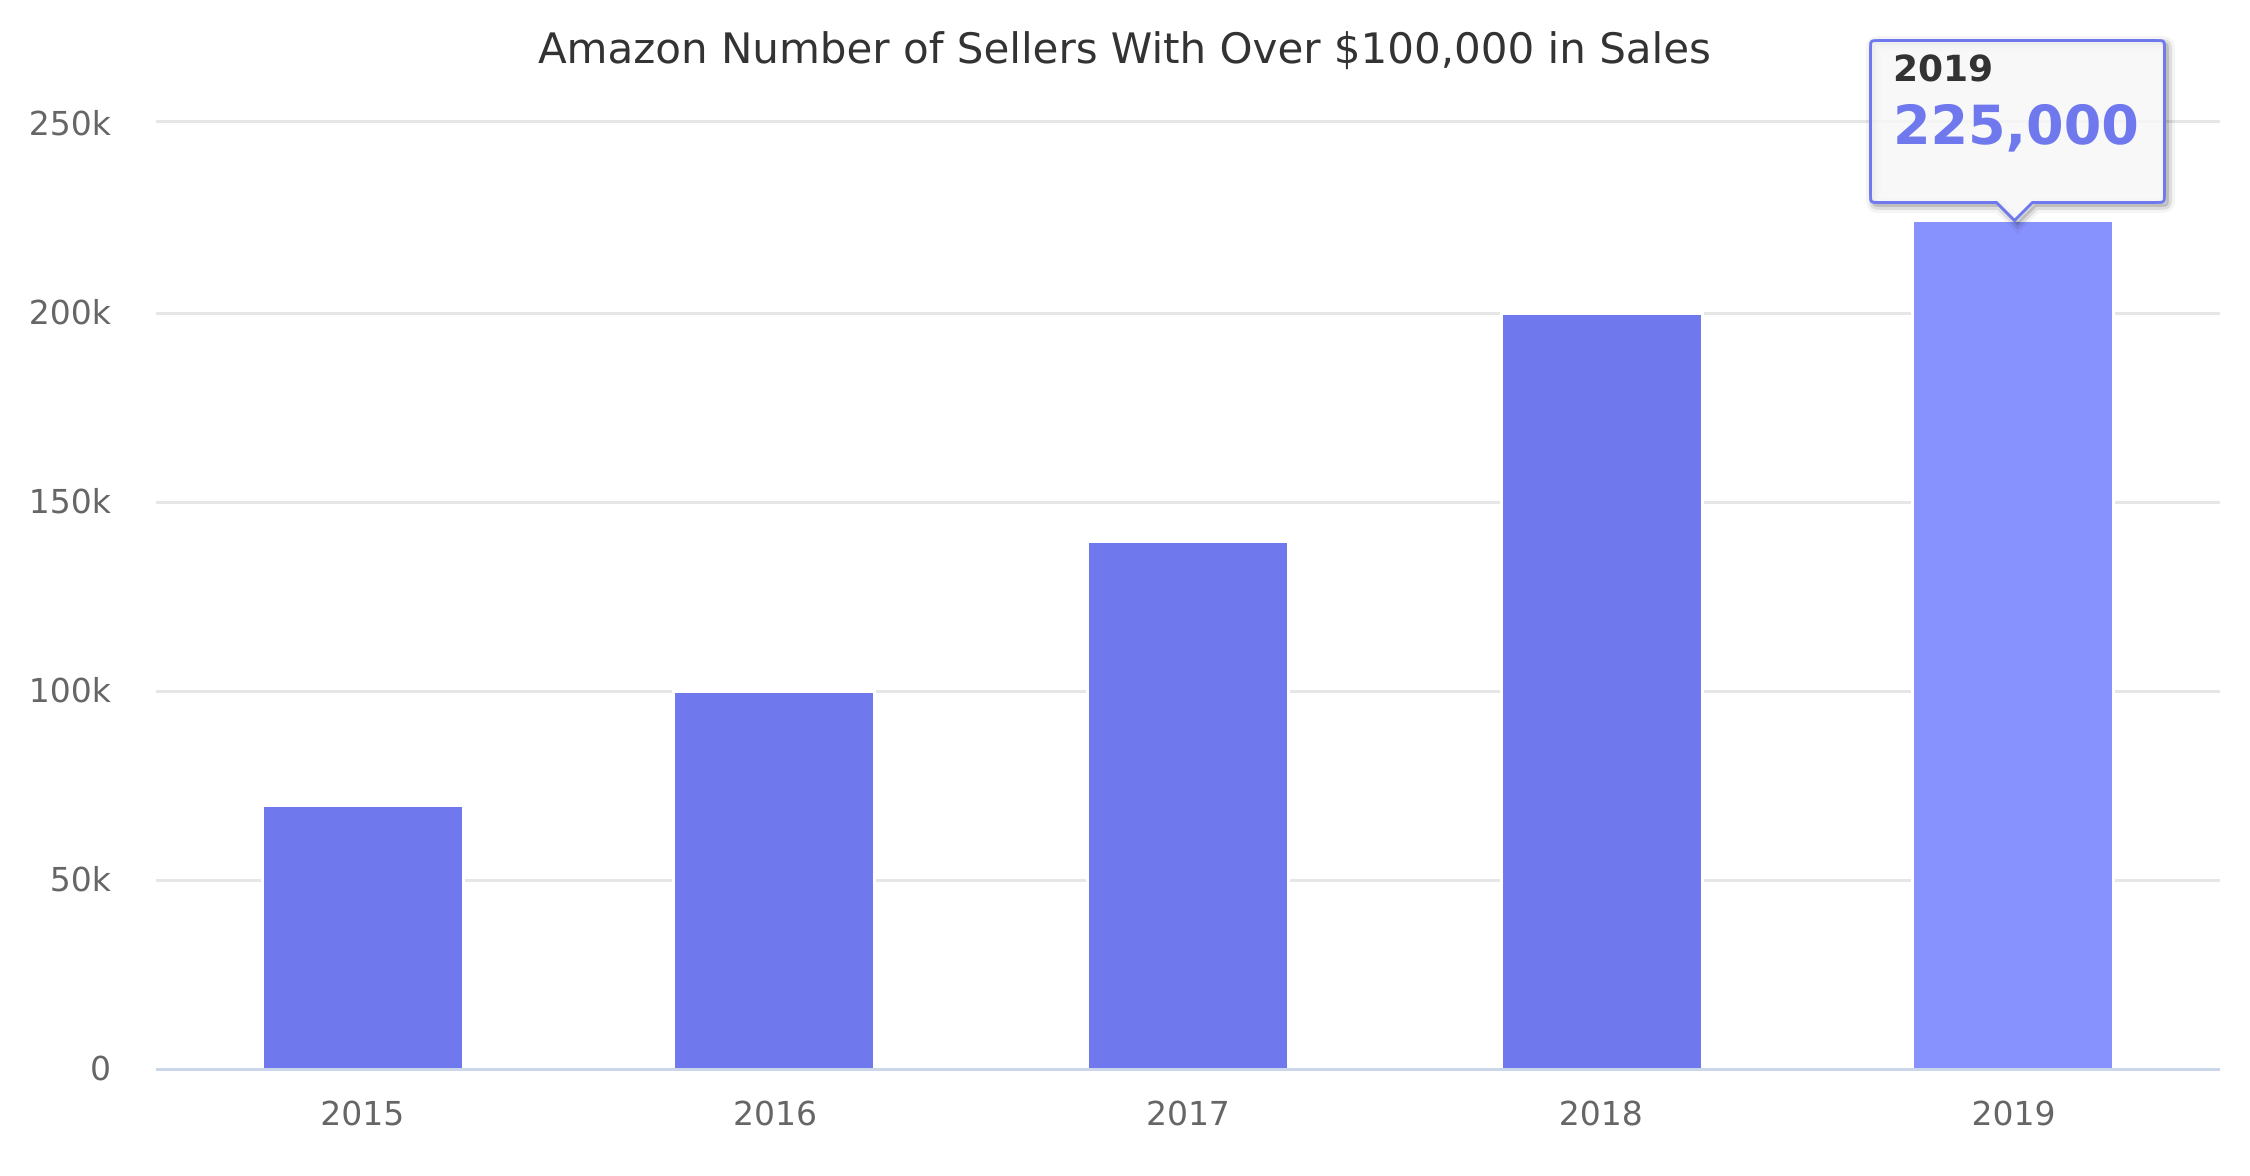 Amazon Number of Sellers With Over $100,000 in Sales 2015-2016